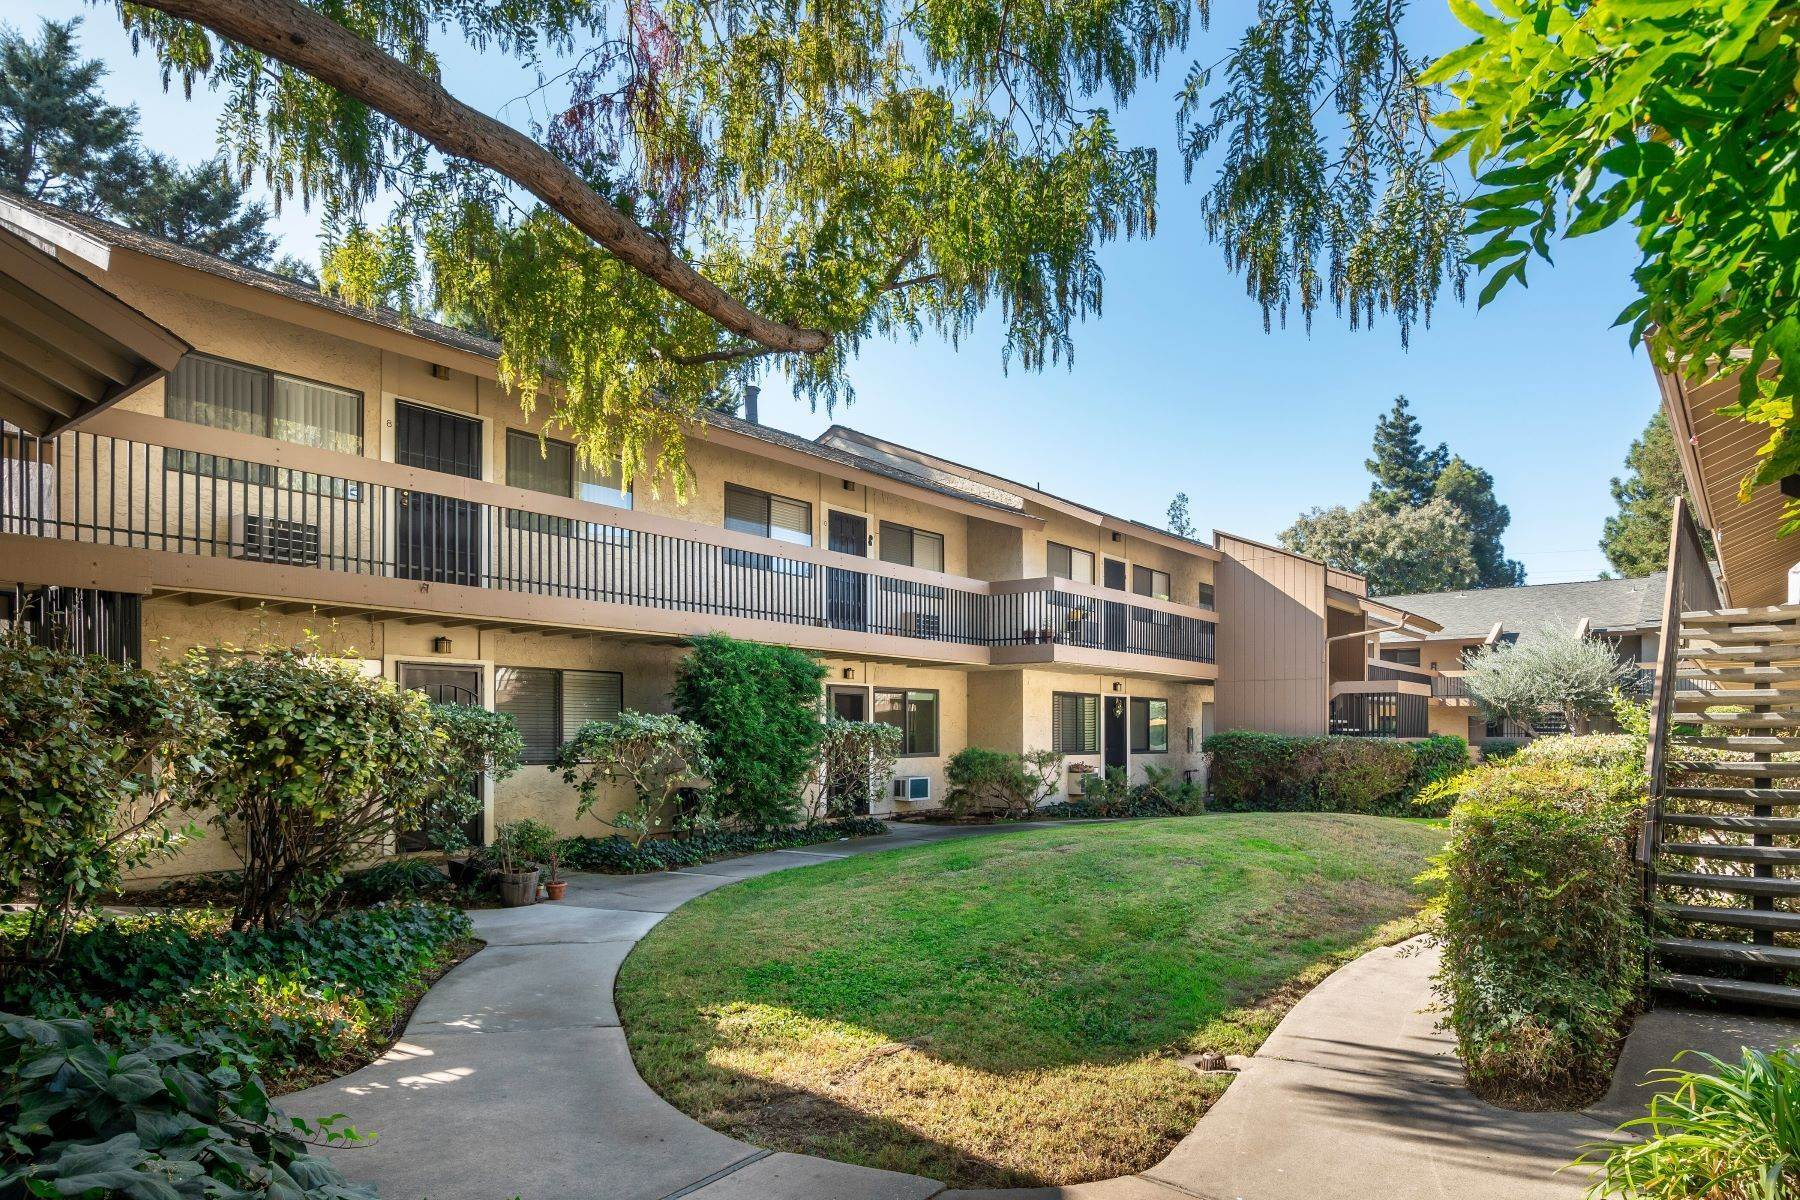 Condominiums en Beautiful Ground Floor Condo in the Heart of Campbell 185 Union Avenue #9 Campbell, California 95008 Estados Unidos